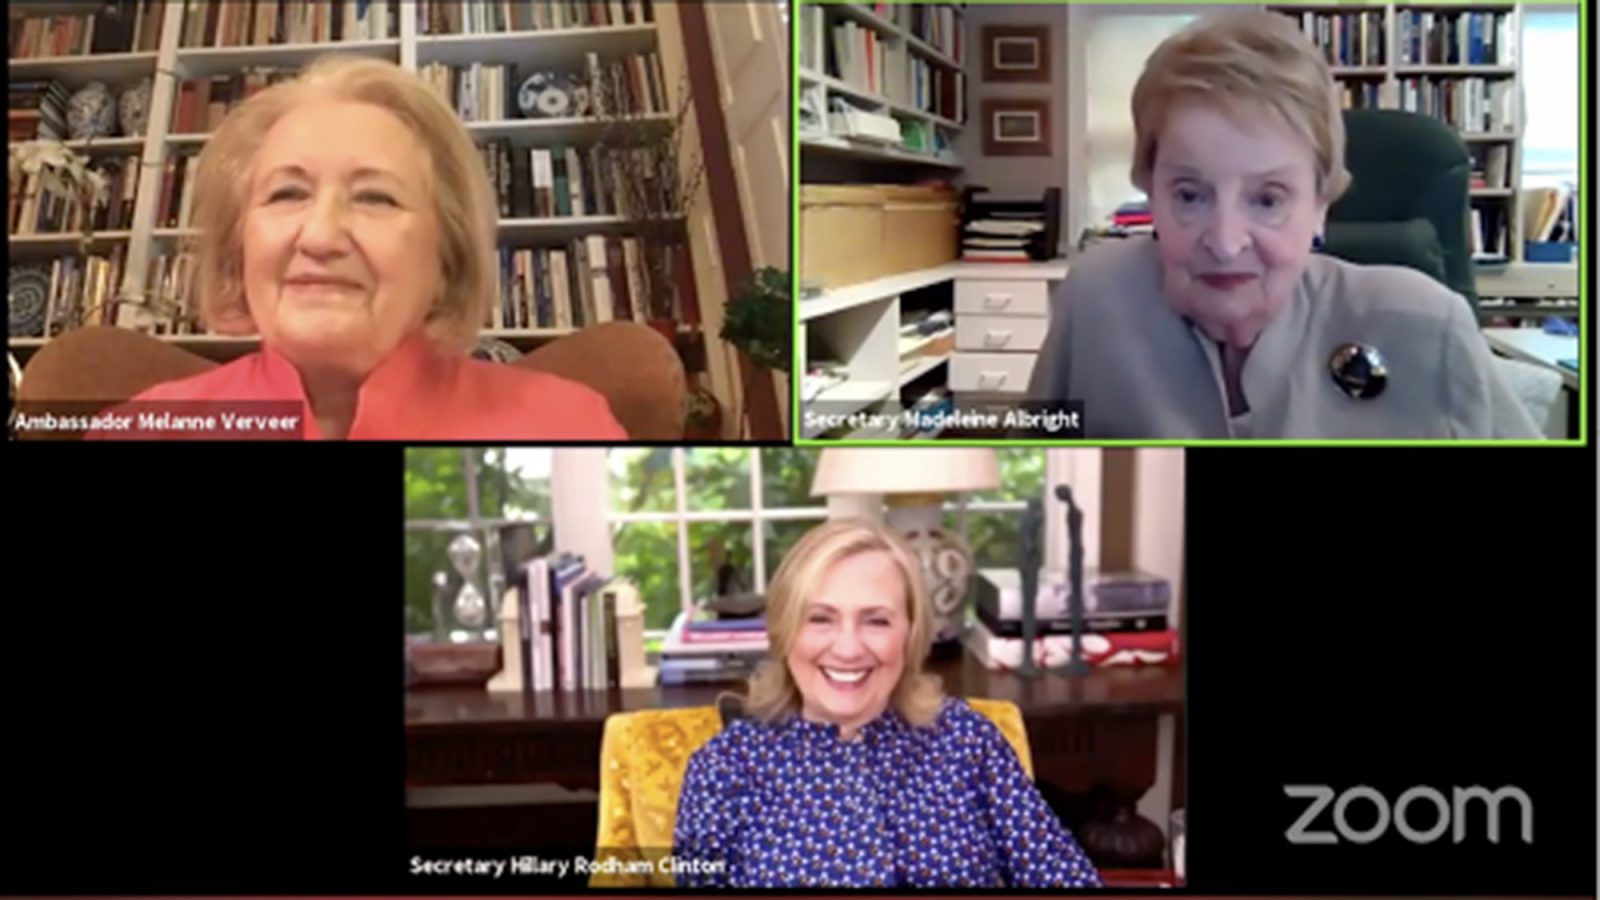 A zoom screenshot of Melanne Verveer, Hillary Clinton and Madeline Albright.